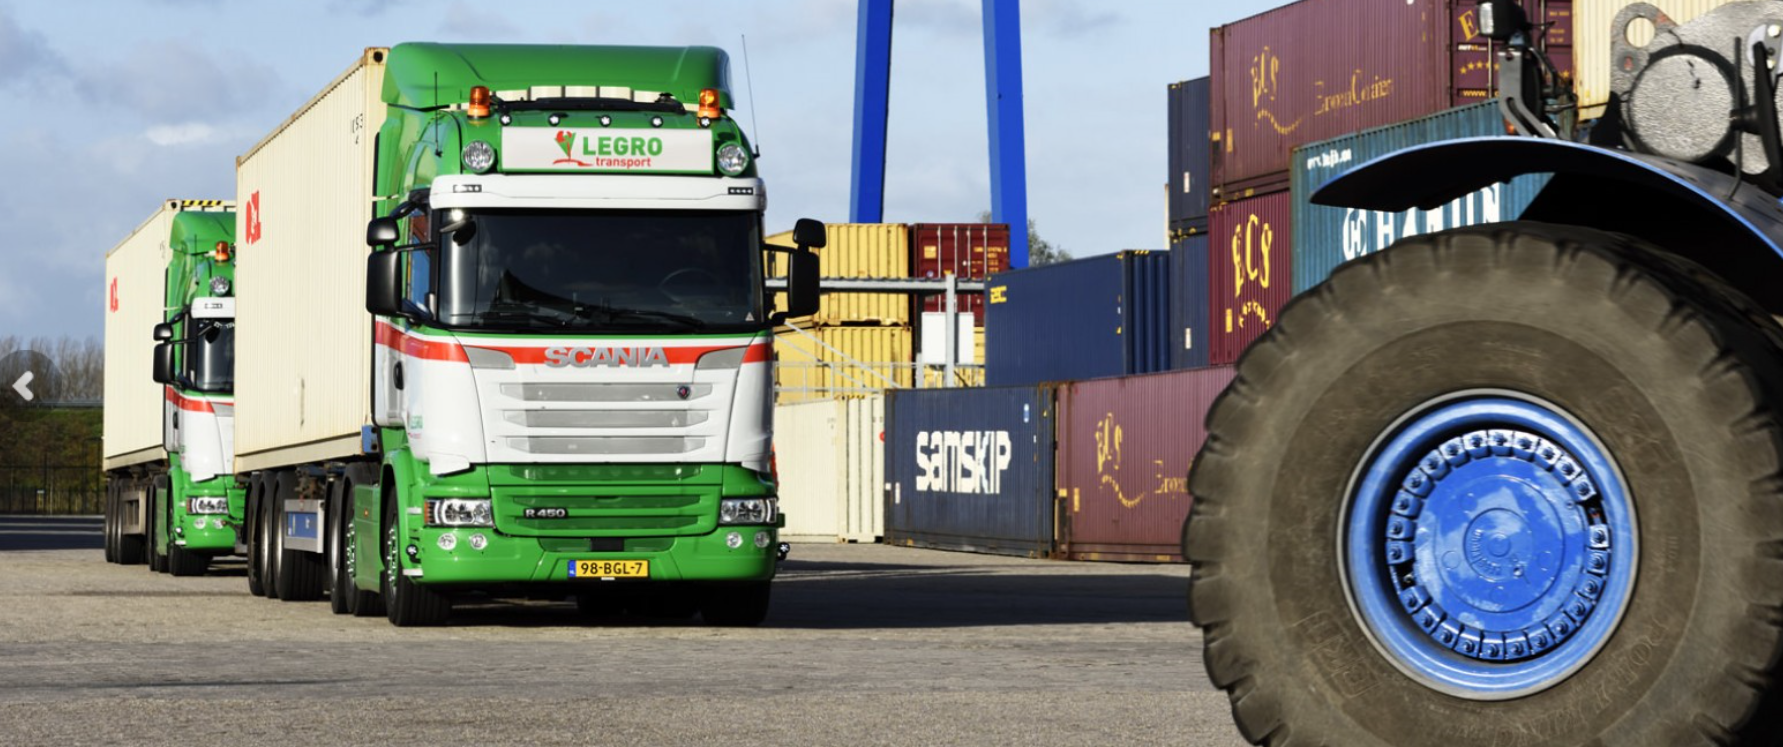 Scania-met-Container